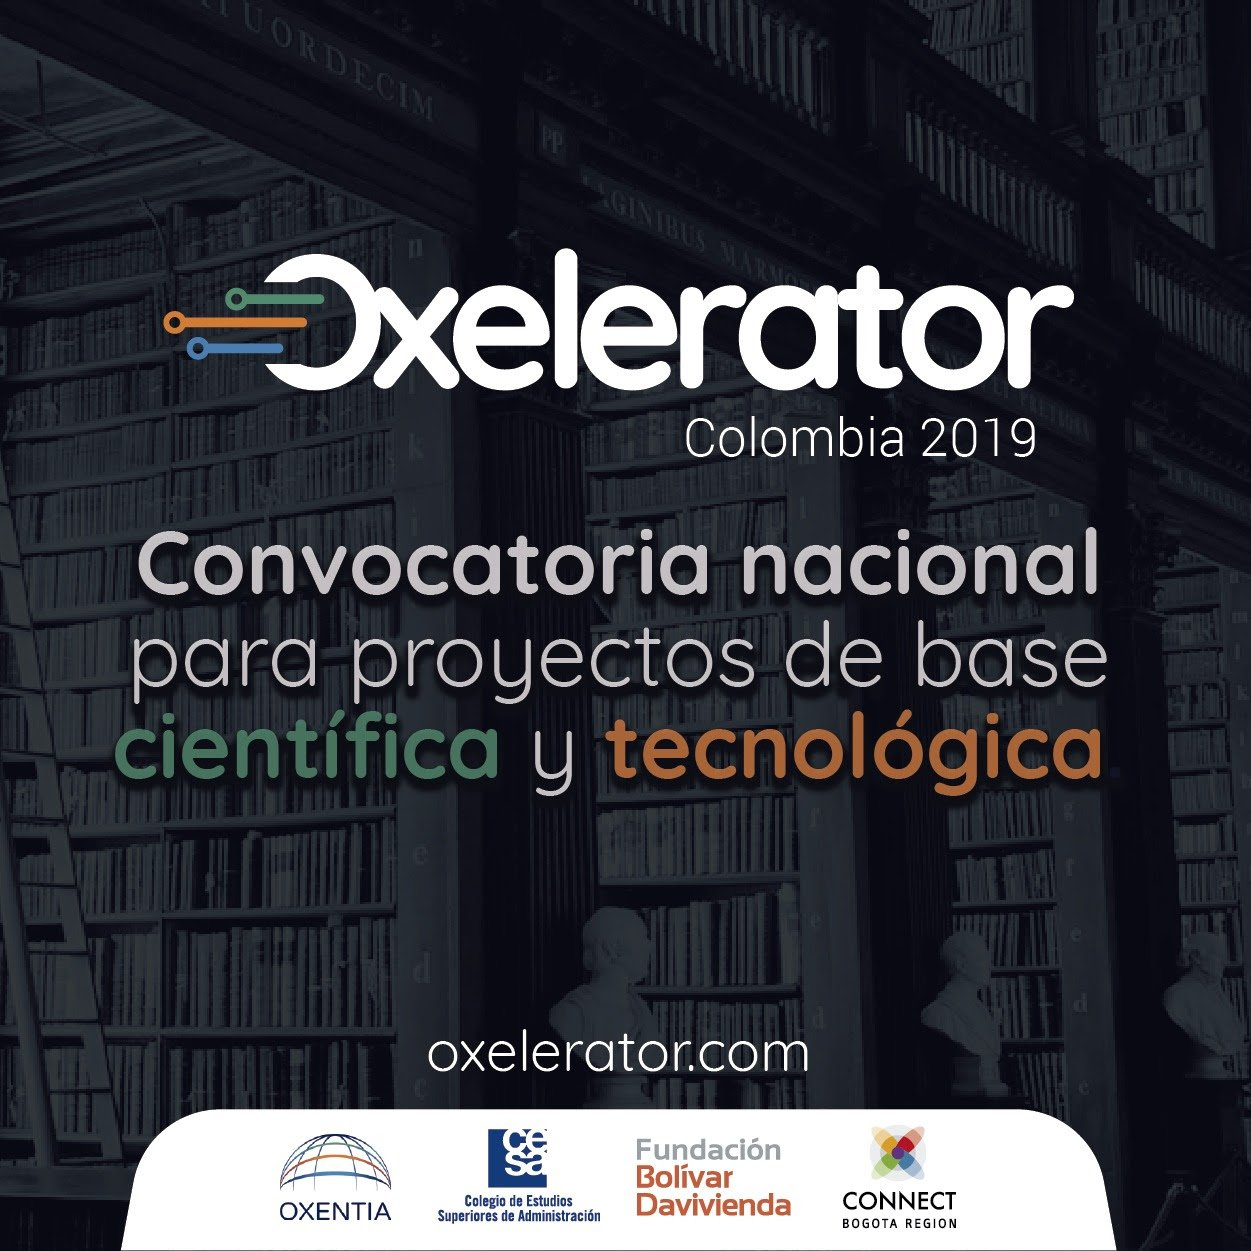 Oxelerator Colombia 2019